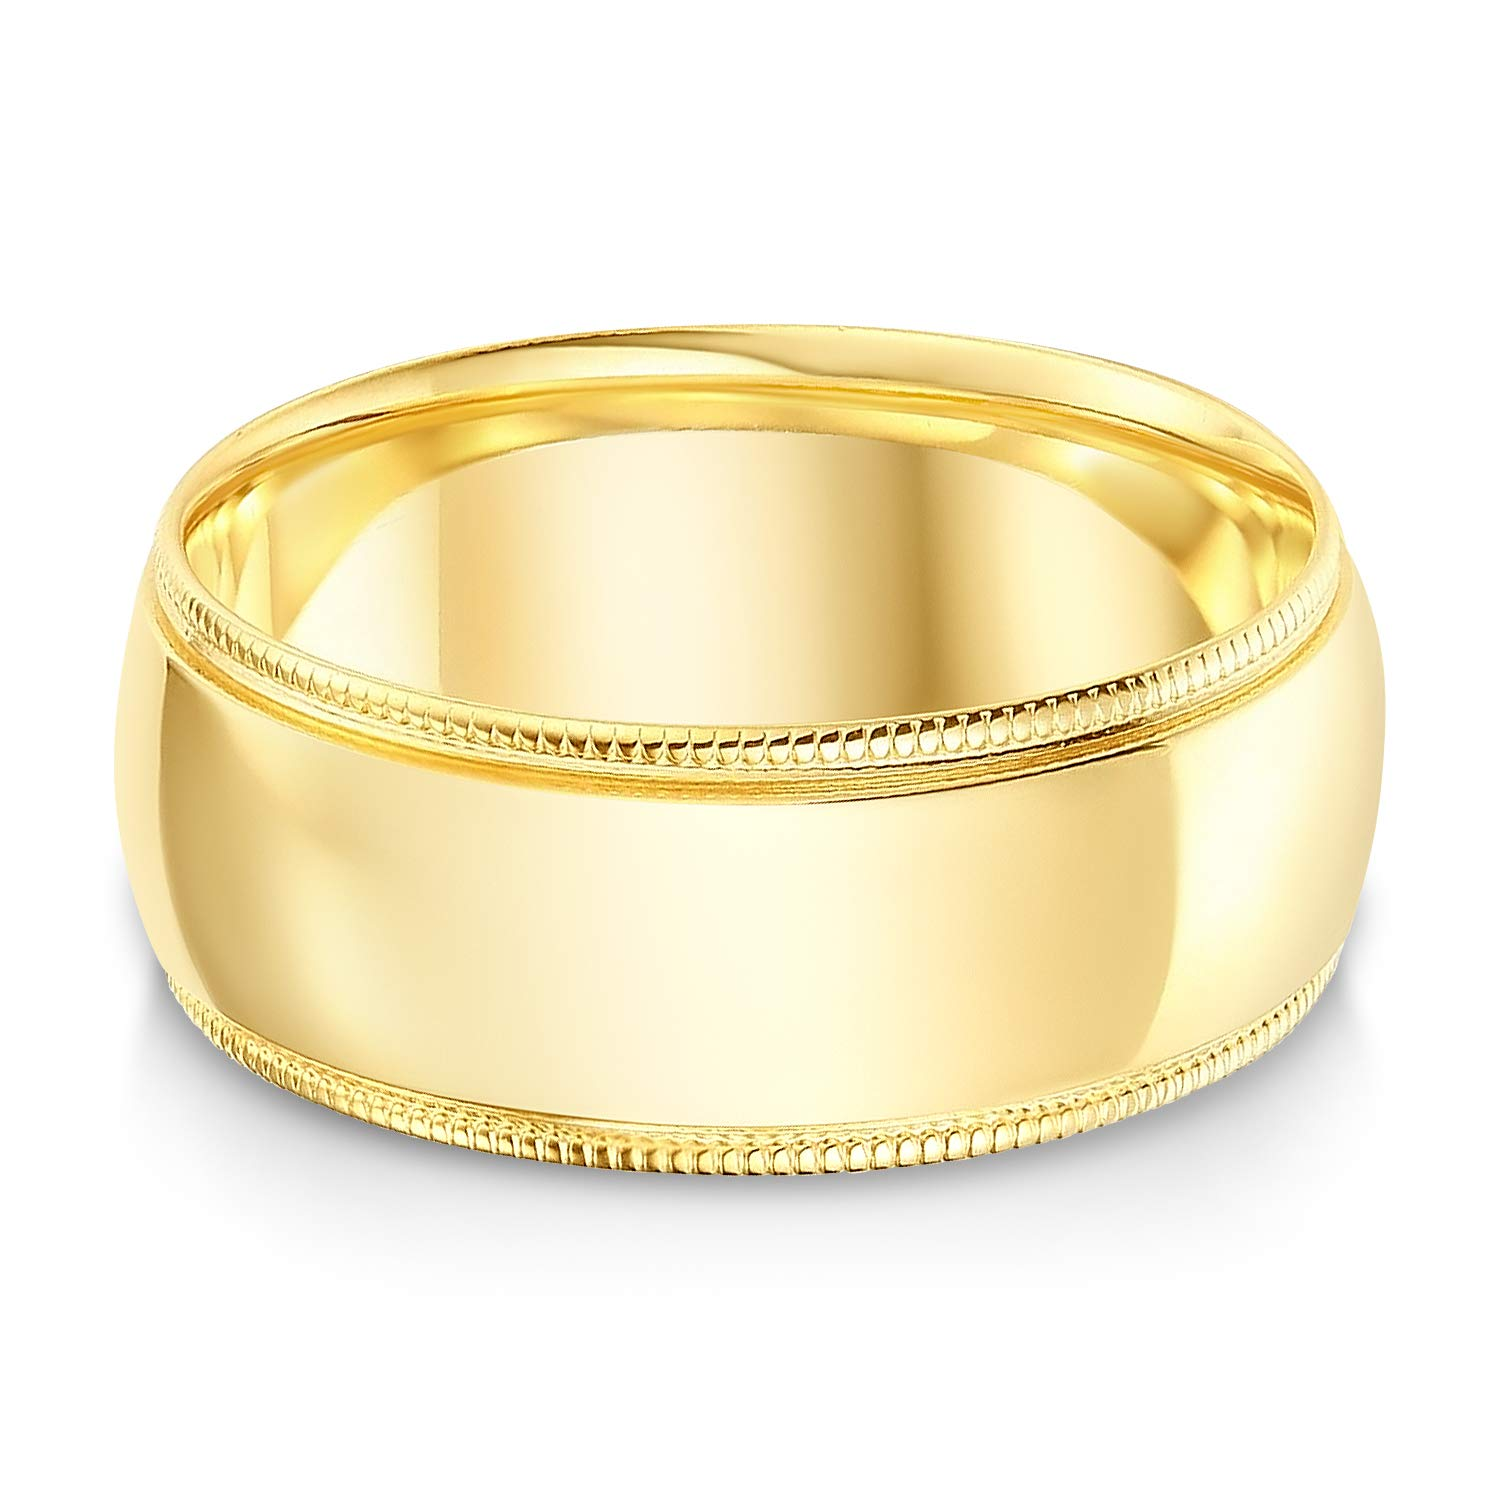 Ioka - 14k Solid Yellow Gold 8mm Comfort Fit Milgrain Traditional Wedding Band Ring - size 5